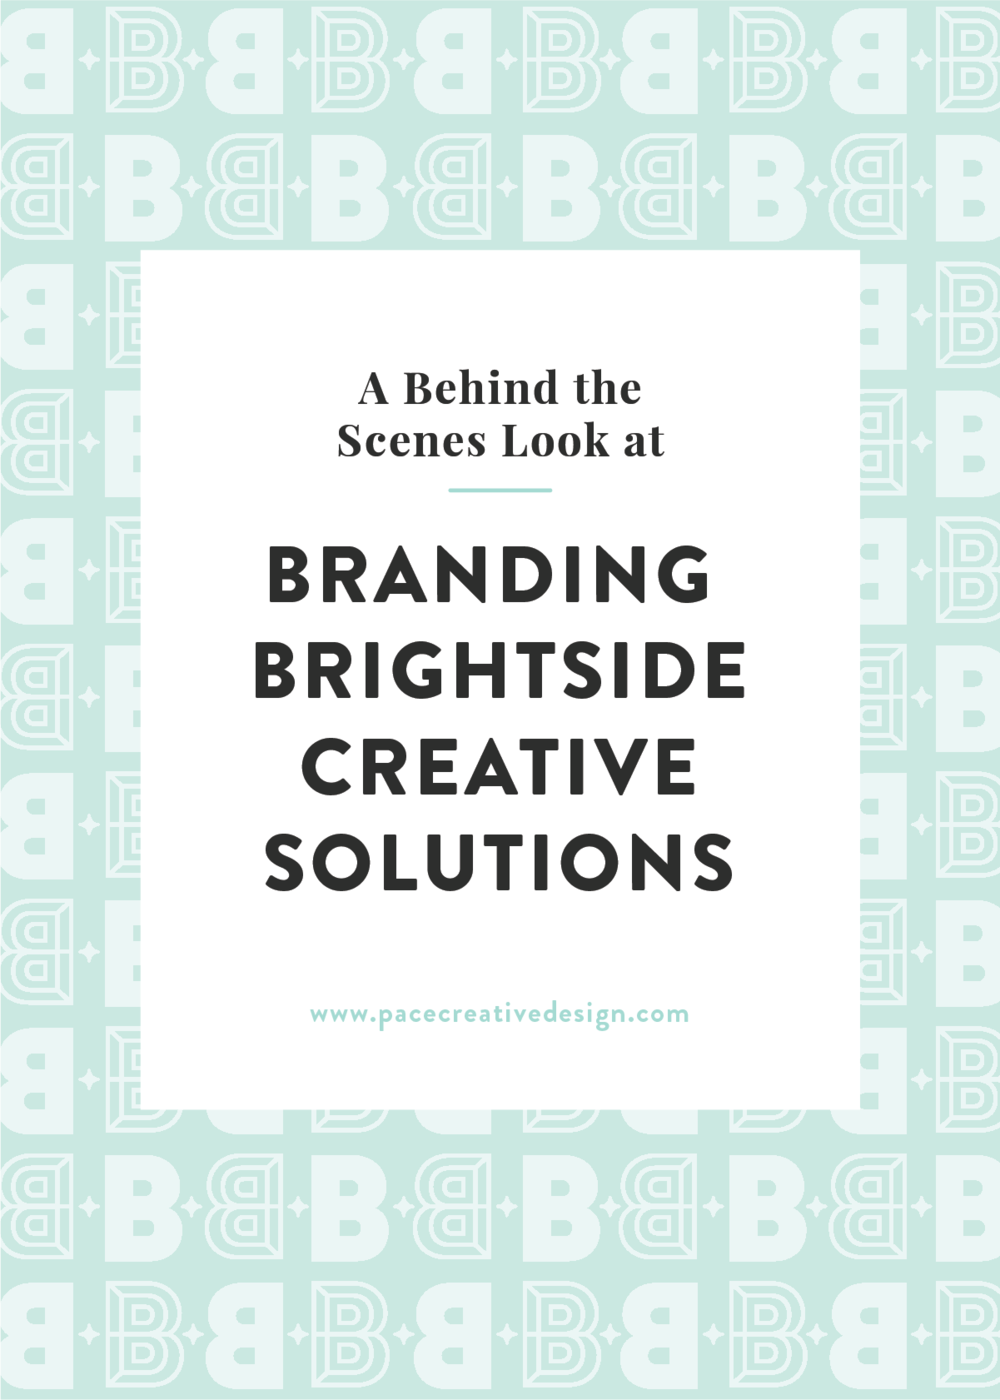 Brightside Creative Solutions brand design by Pace Creative Design Studio